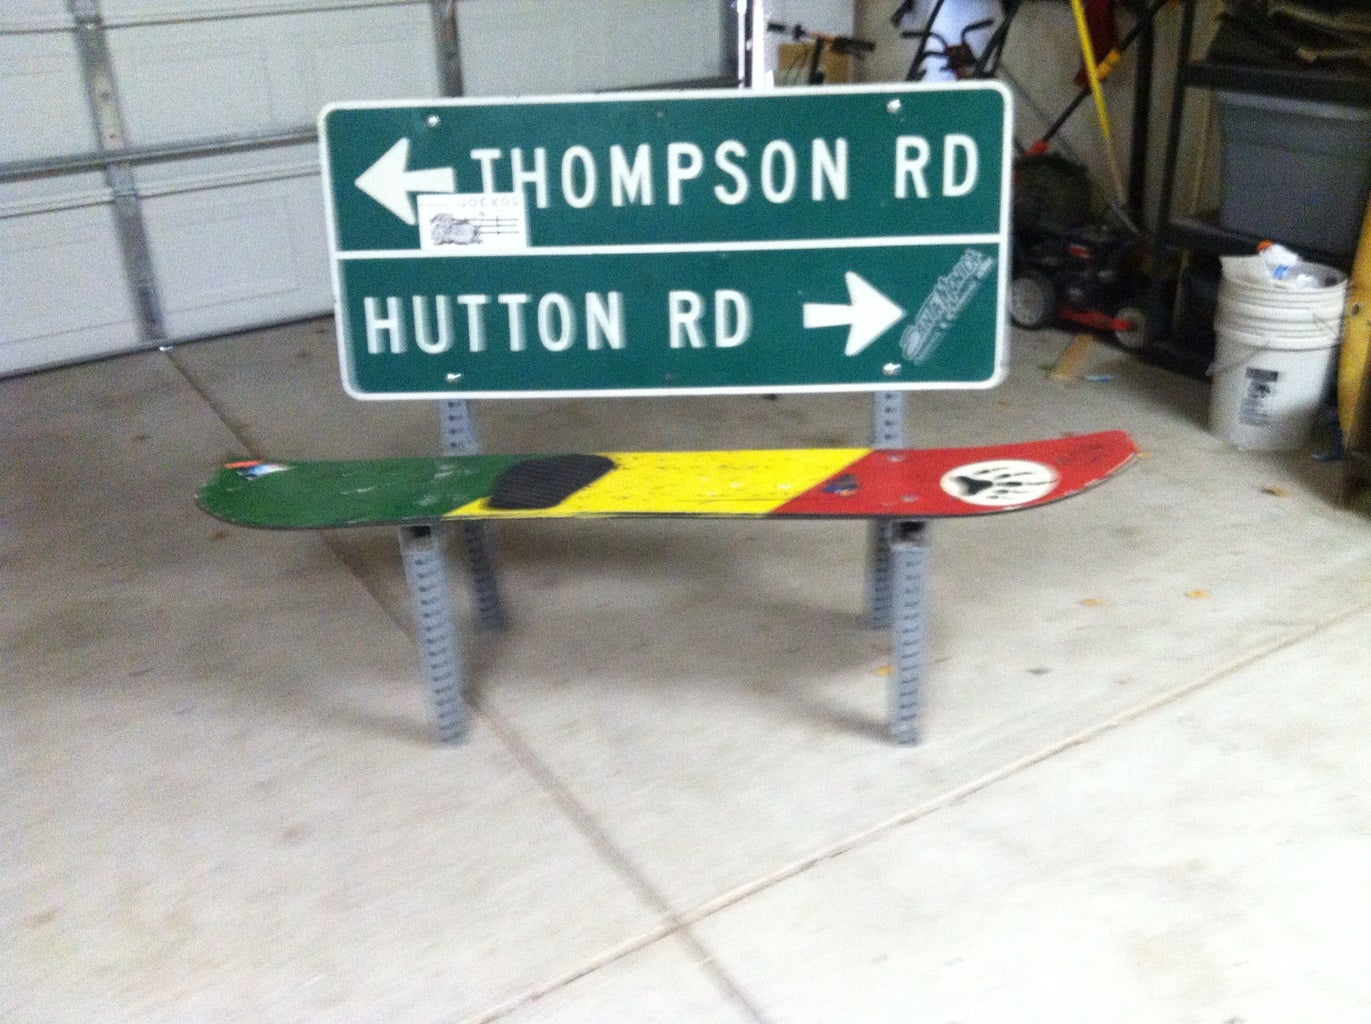 Road Sign/Snowboard Bench